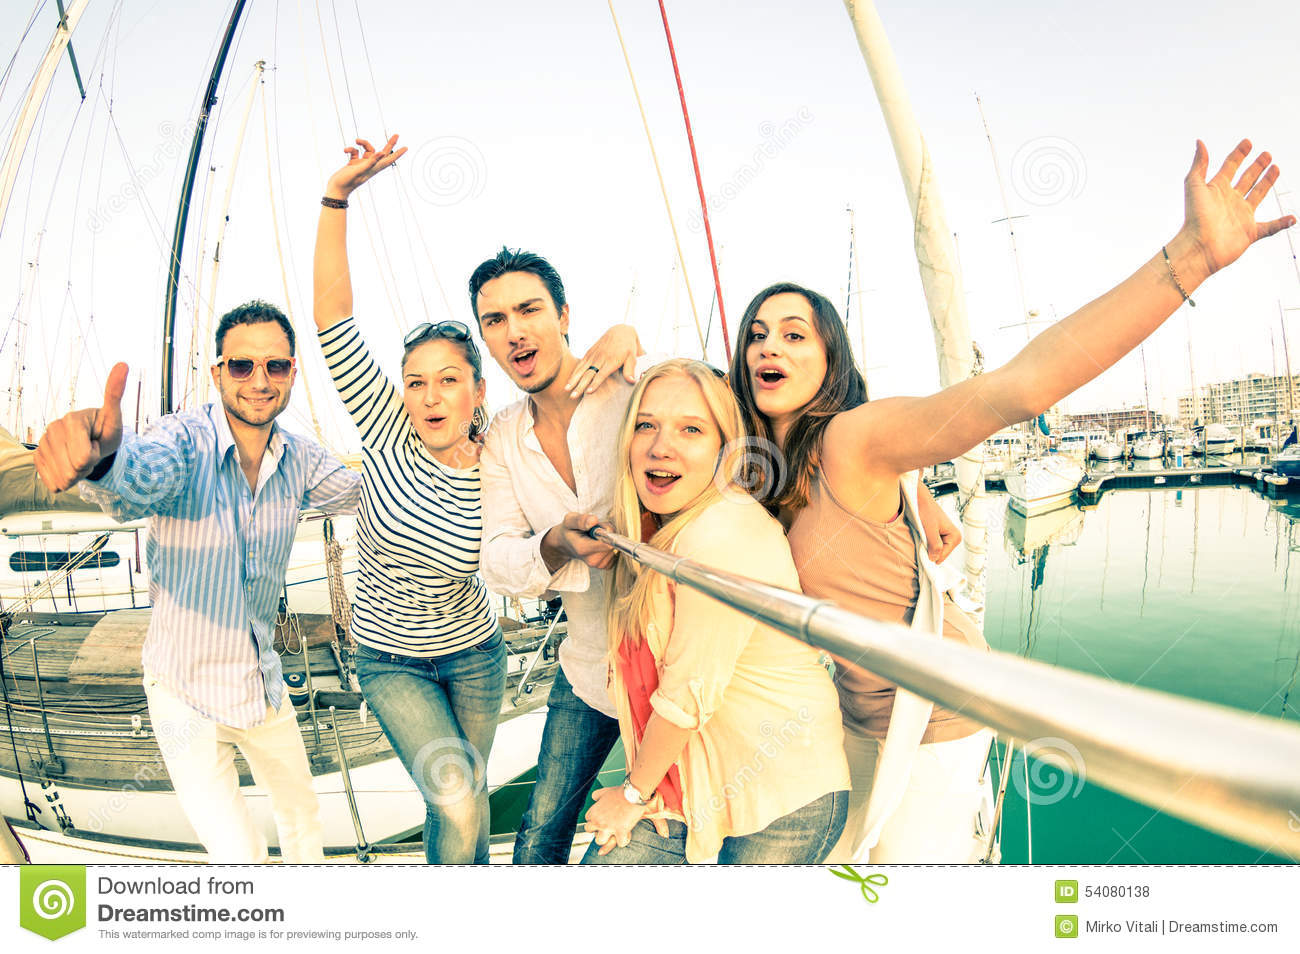 Best friends using selfie stick taking pic on exclusive sailboat